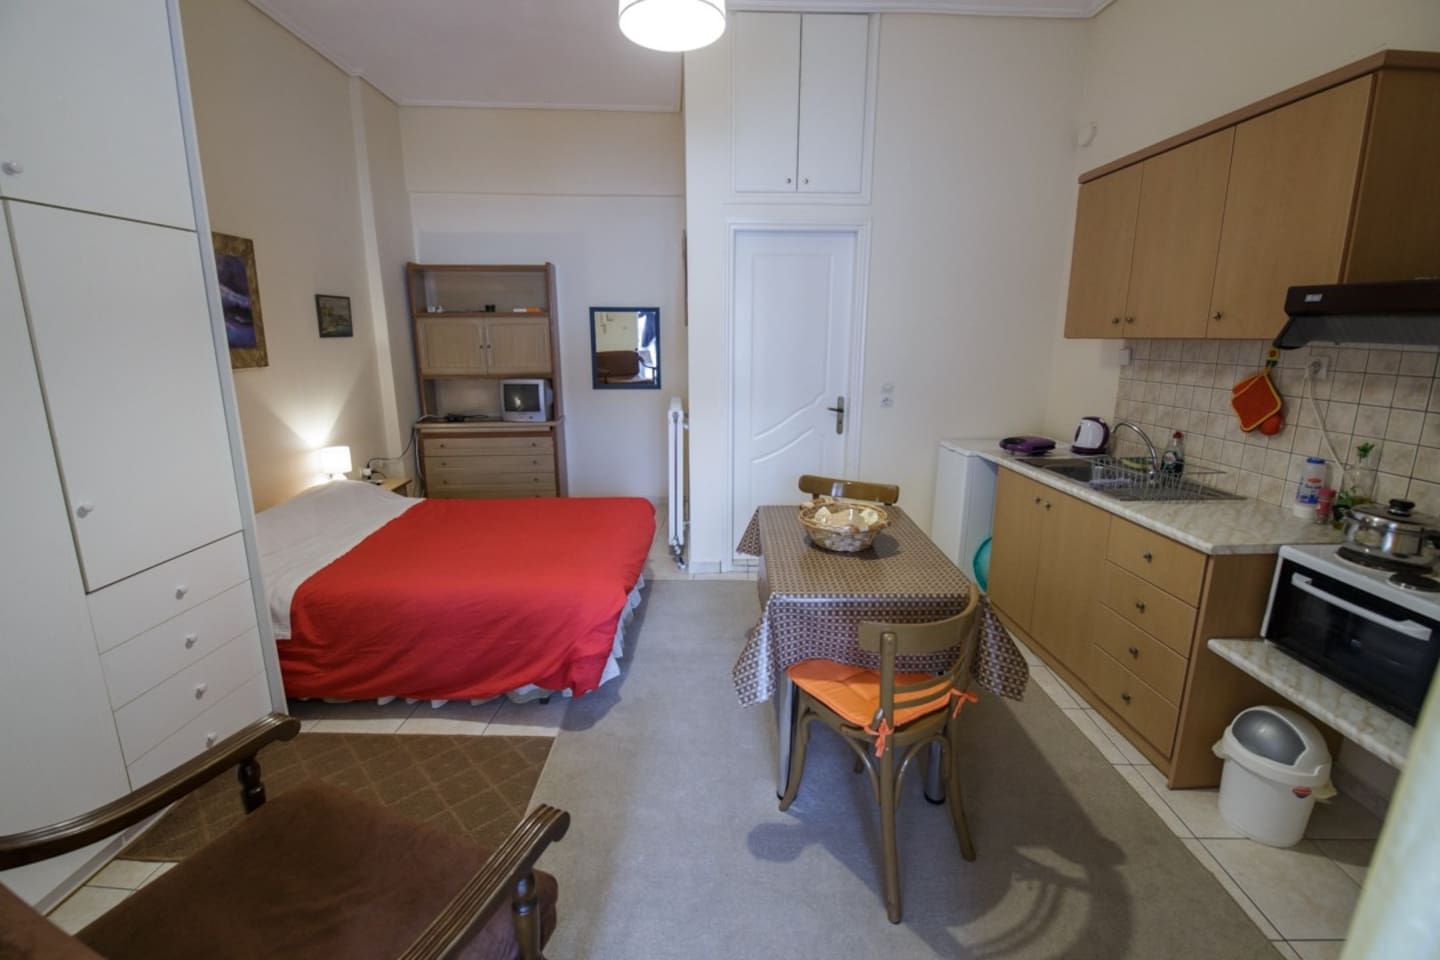 Spacious flat with fully equipped kitchen